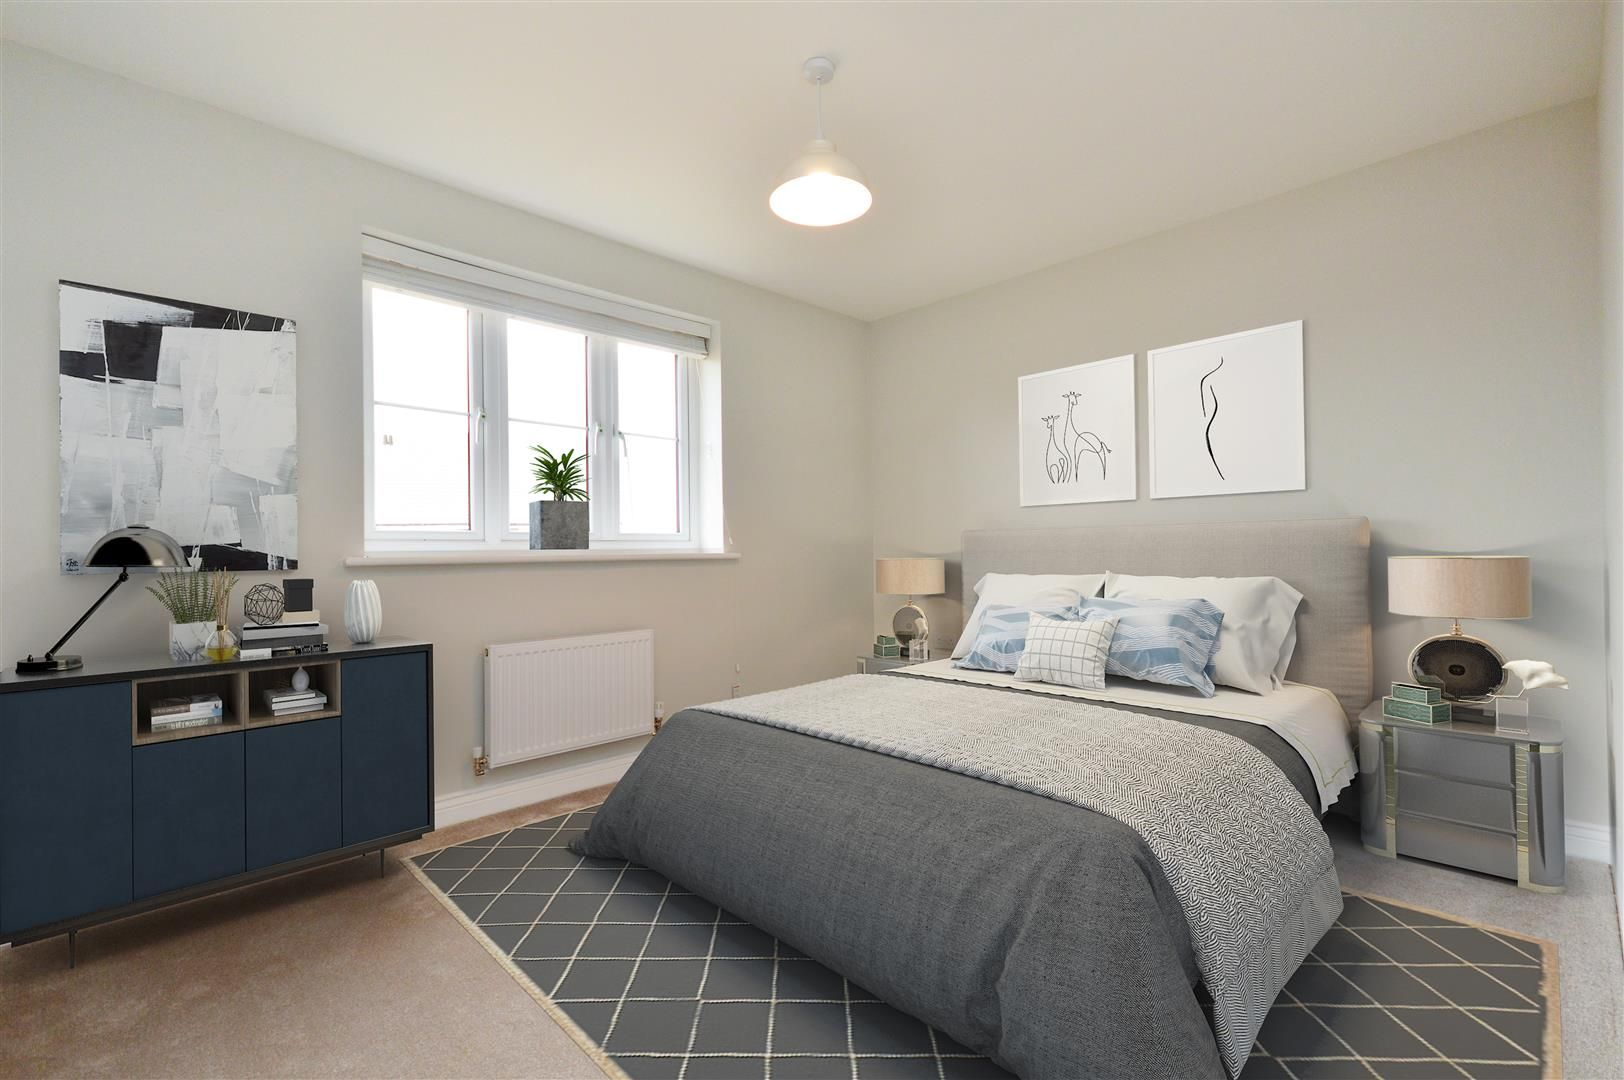 2 bed semi-detached for sale in Kingstone 5